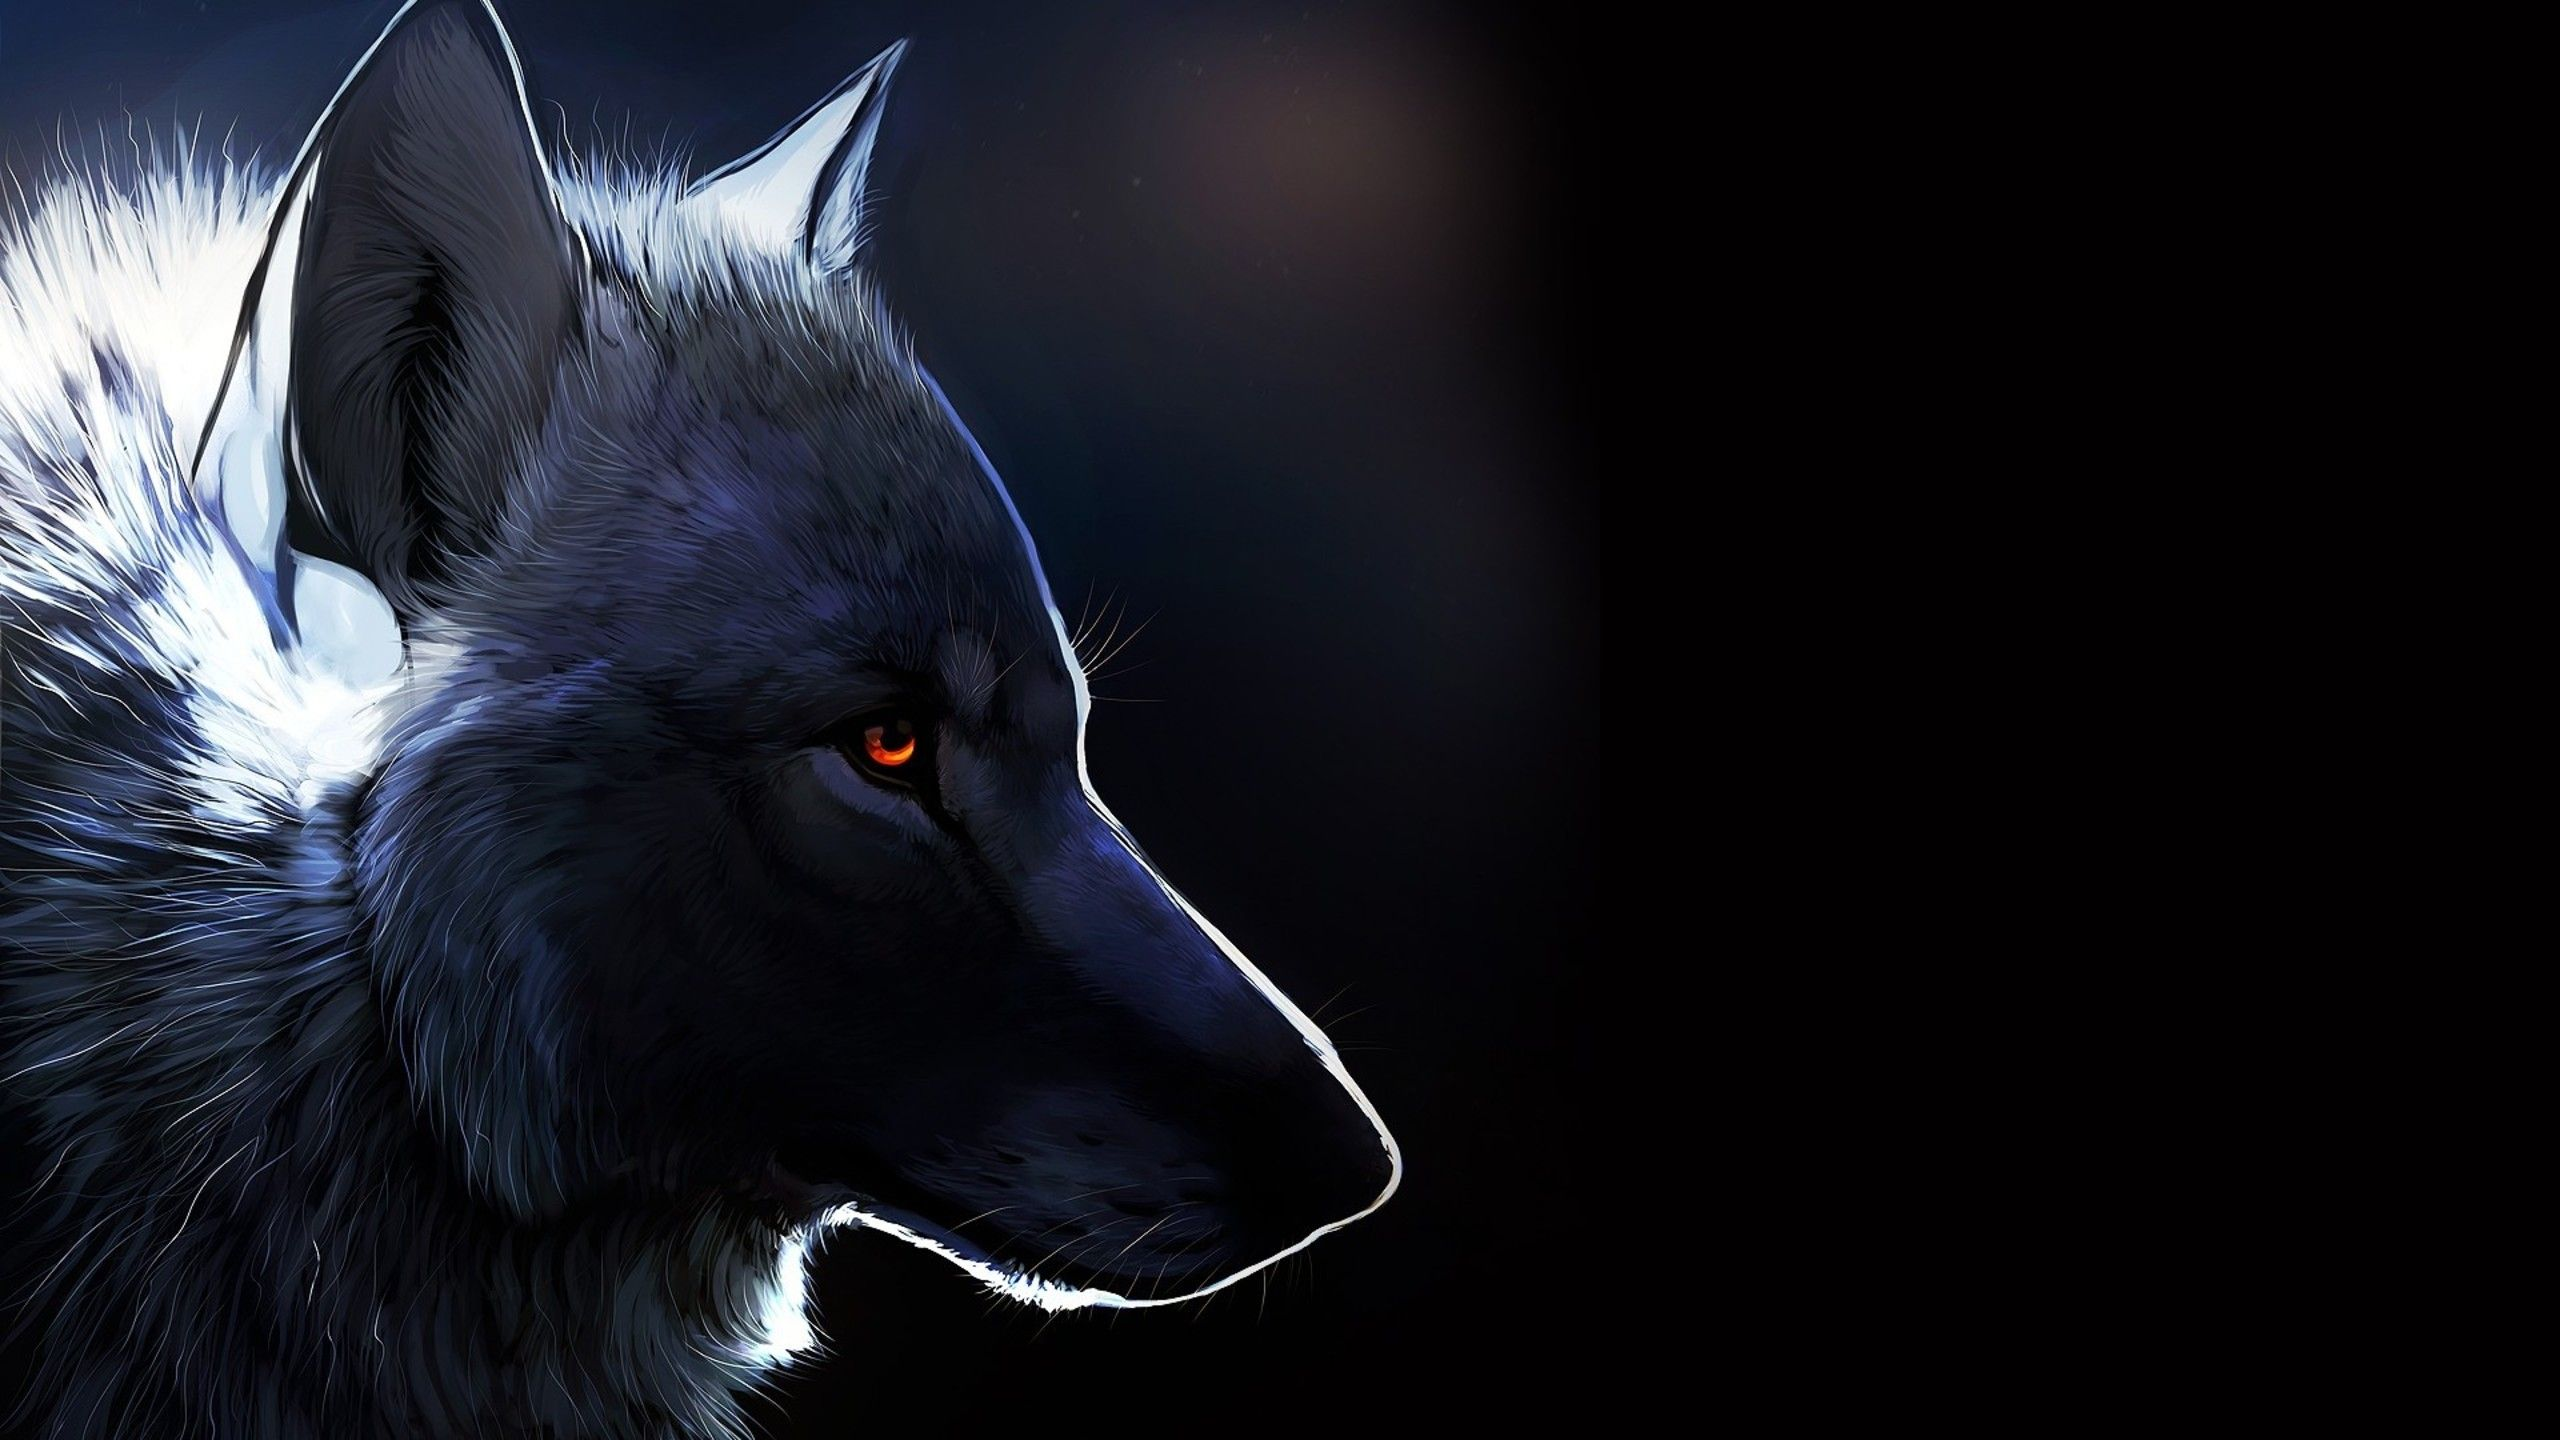 Wallpaper Download 2560x1440 Black Wolf Drawing Dark Creative Wallpaper Wild Animals Wallpapers Animals Wallpapers Wolf Wallpaper Wolf Art Animal Wallpaper